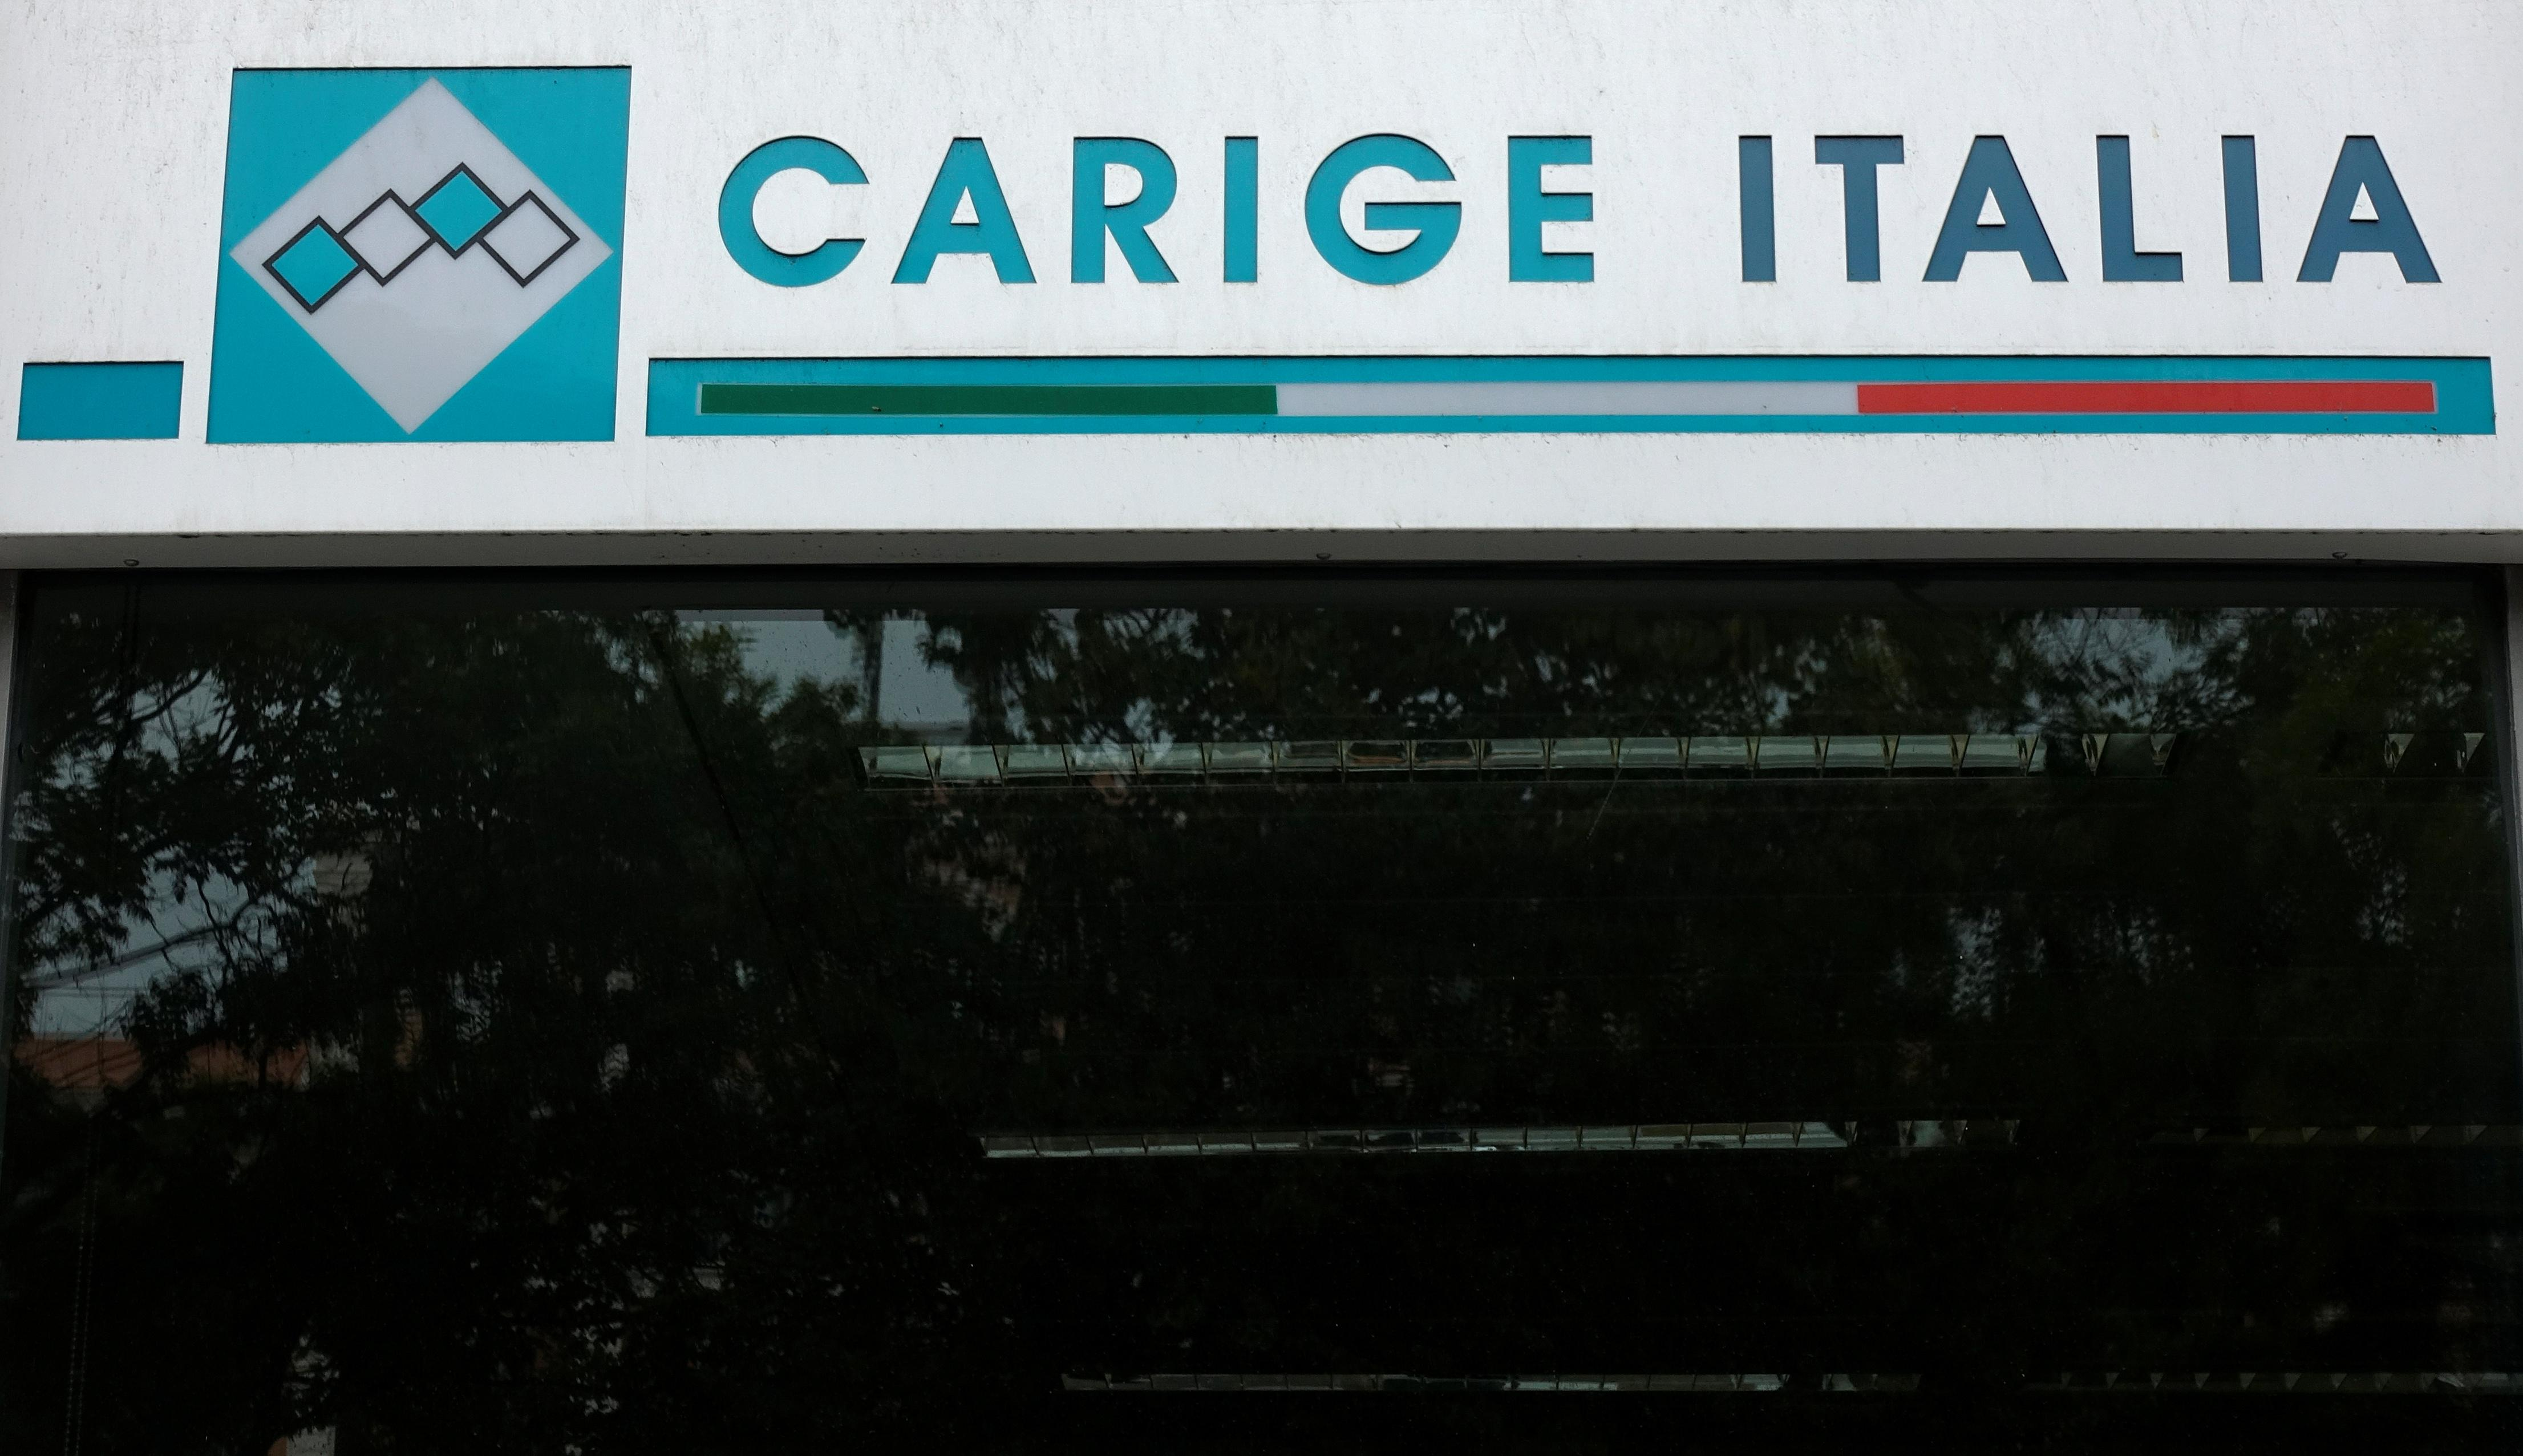 Italy's Carige calls shareholder meeting to approve capital increase